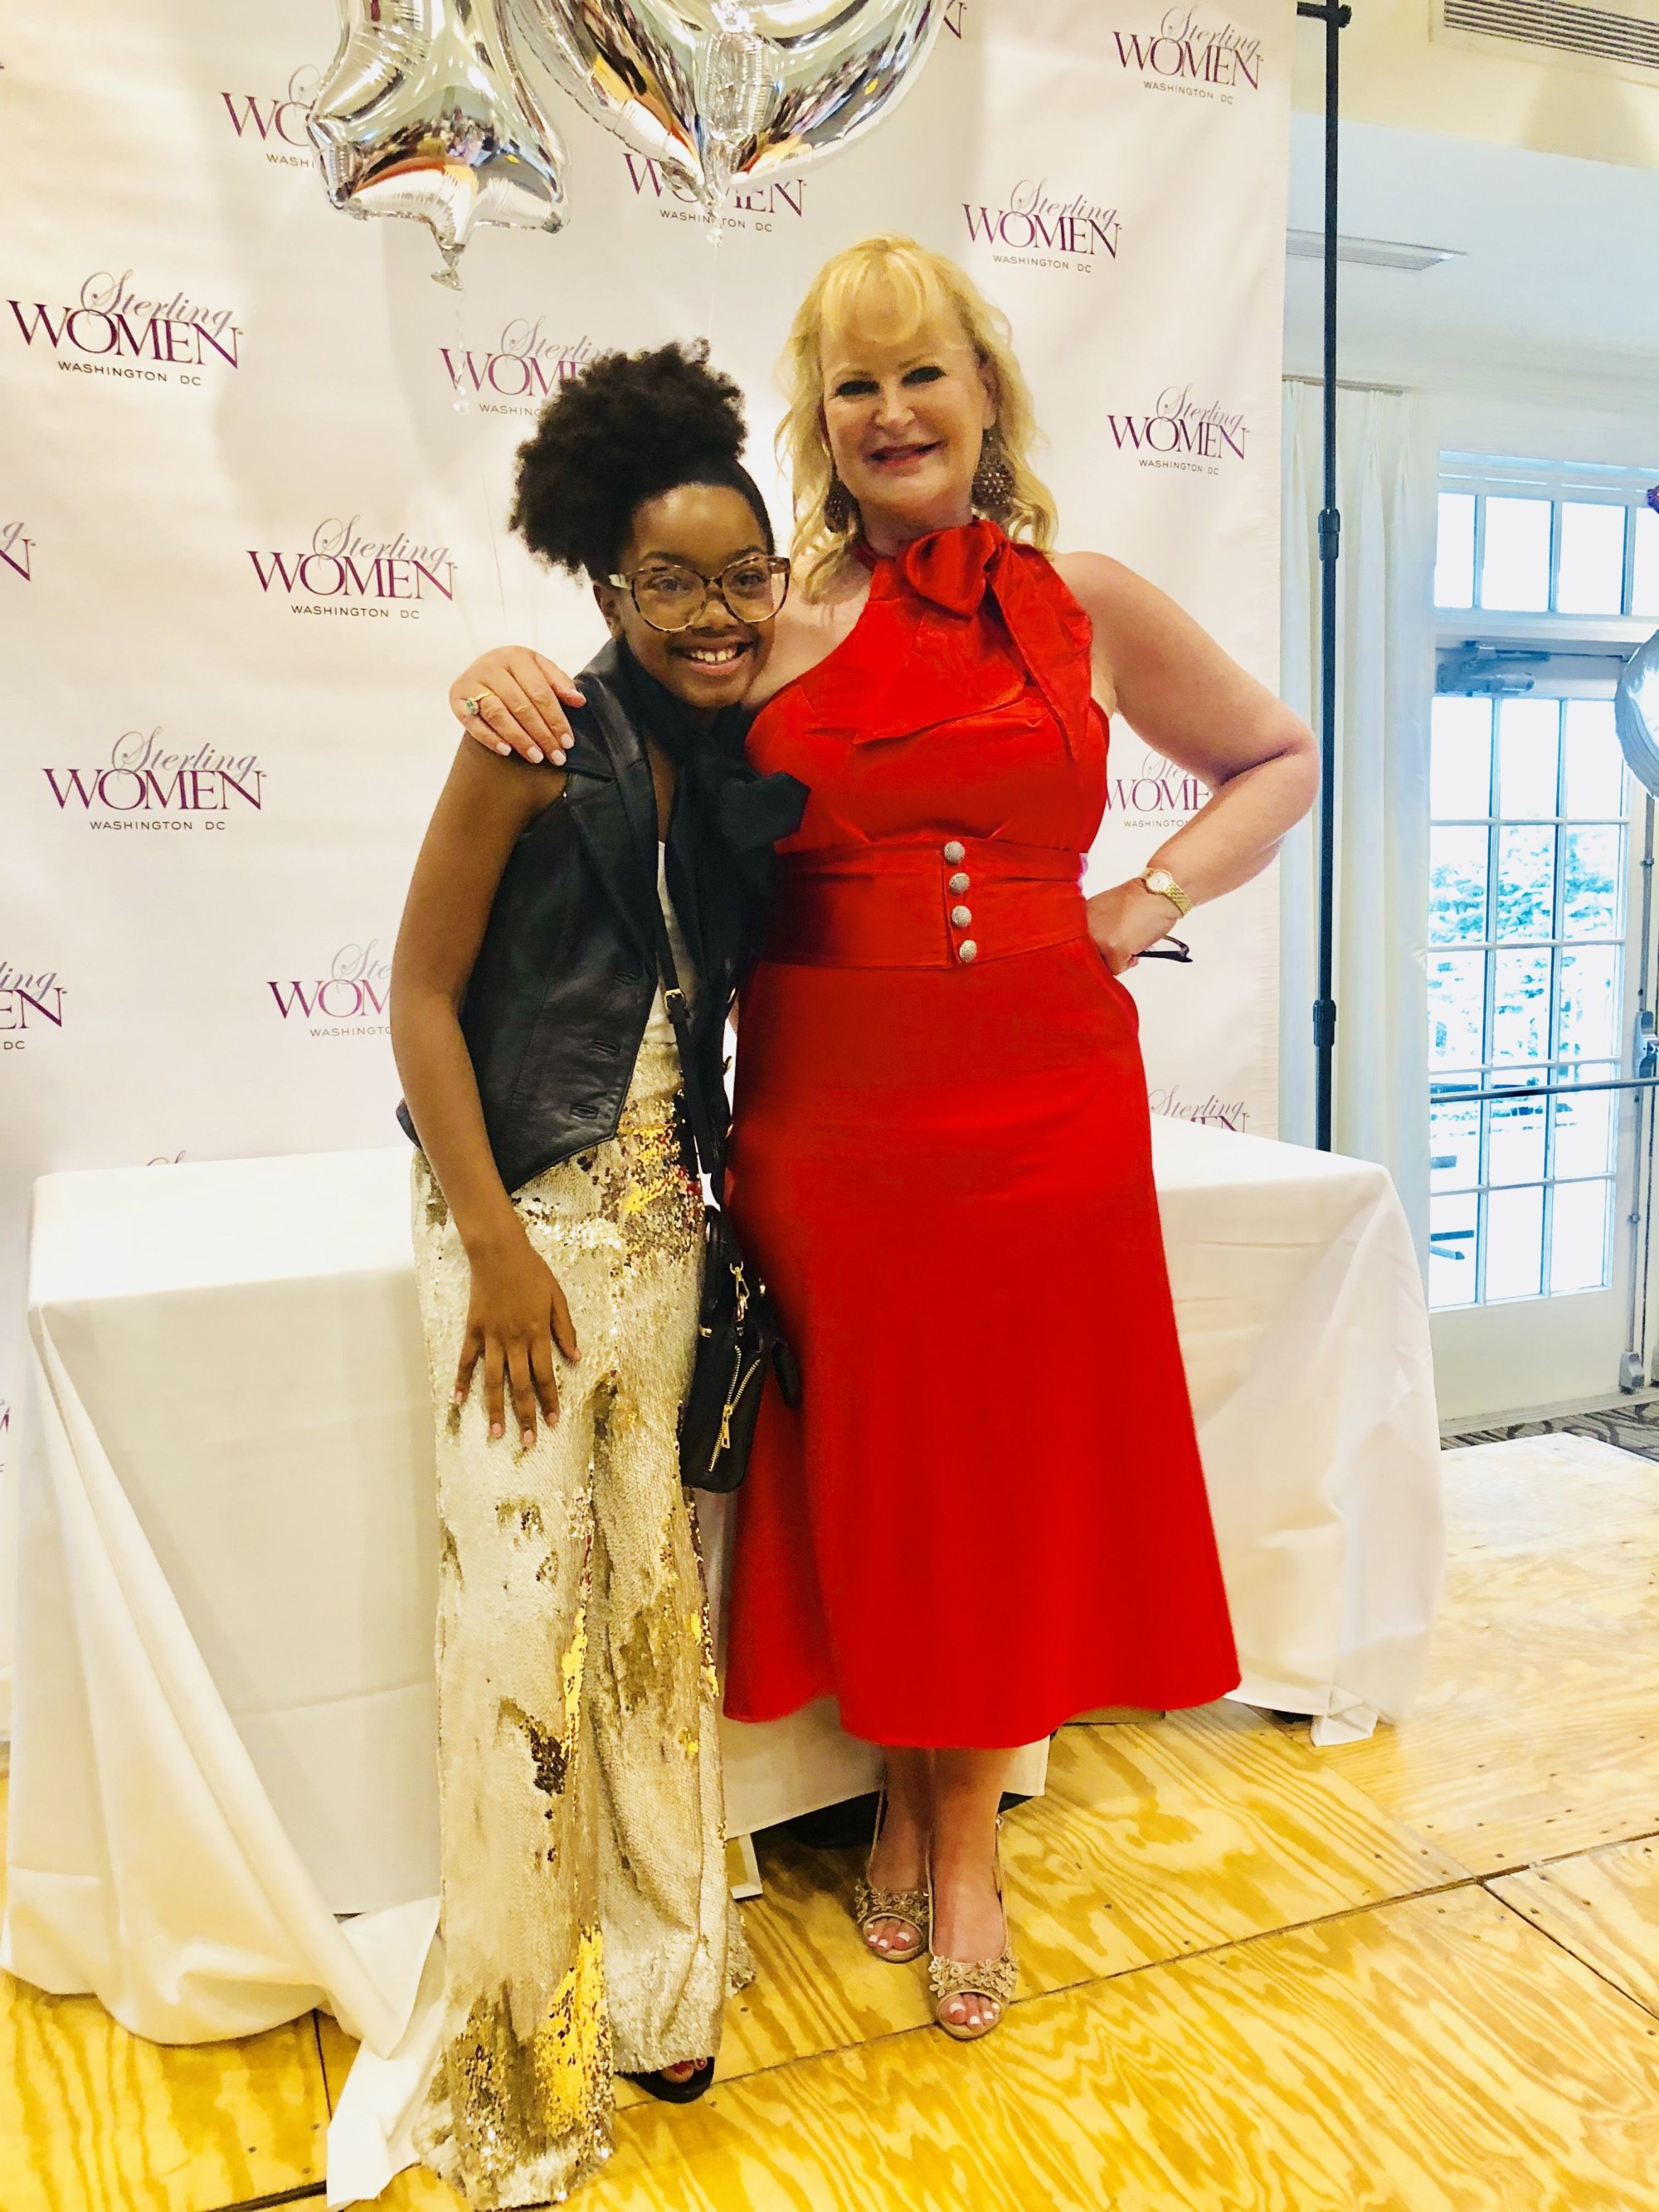 """Both these outfits are """"Sew Fly Sky"""" designs by Skylar Raiyn. Posing with Kristina Bouweiri, the owner of Reston Limousine, Sklyar created the dress for the Sterling Women 10th Anniversary Luncheon in August. (Courtesy, Danyel Trammell)"""